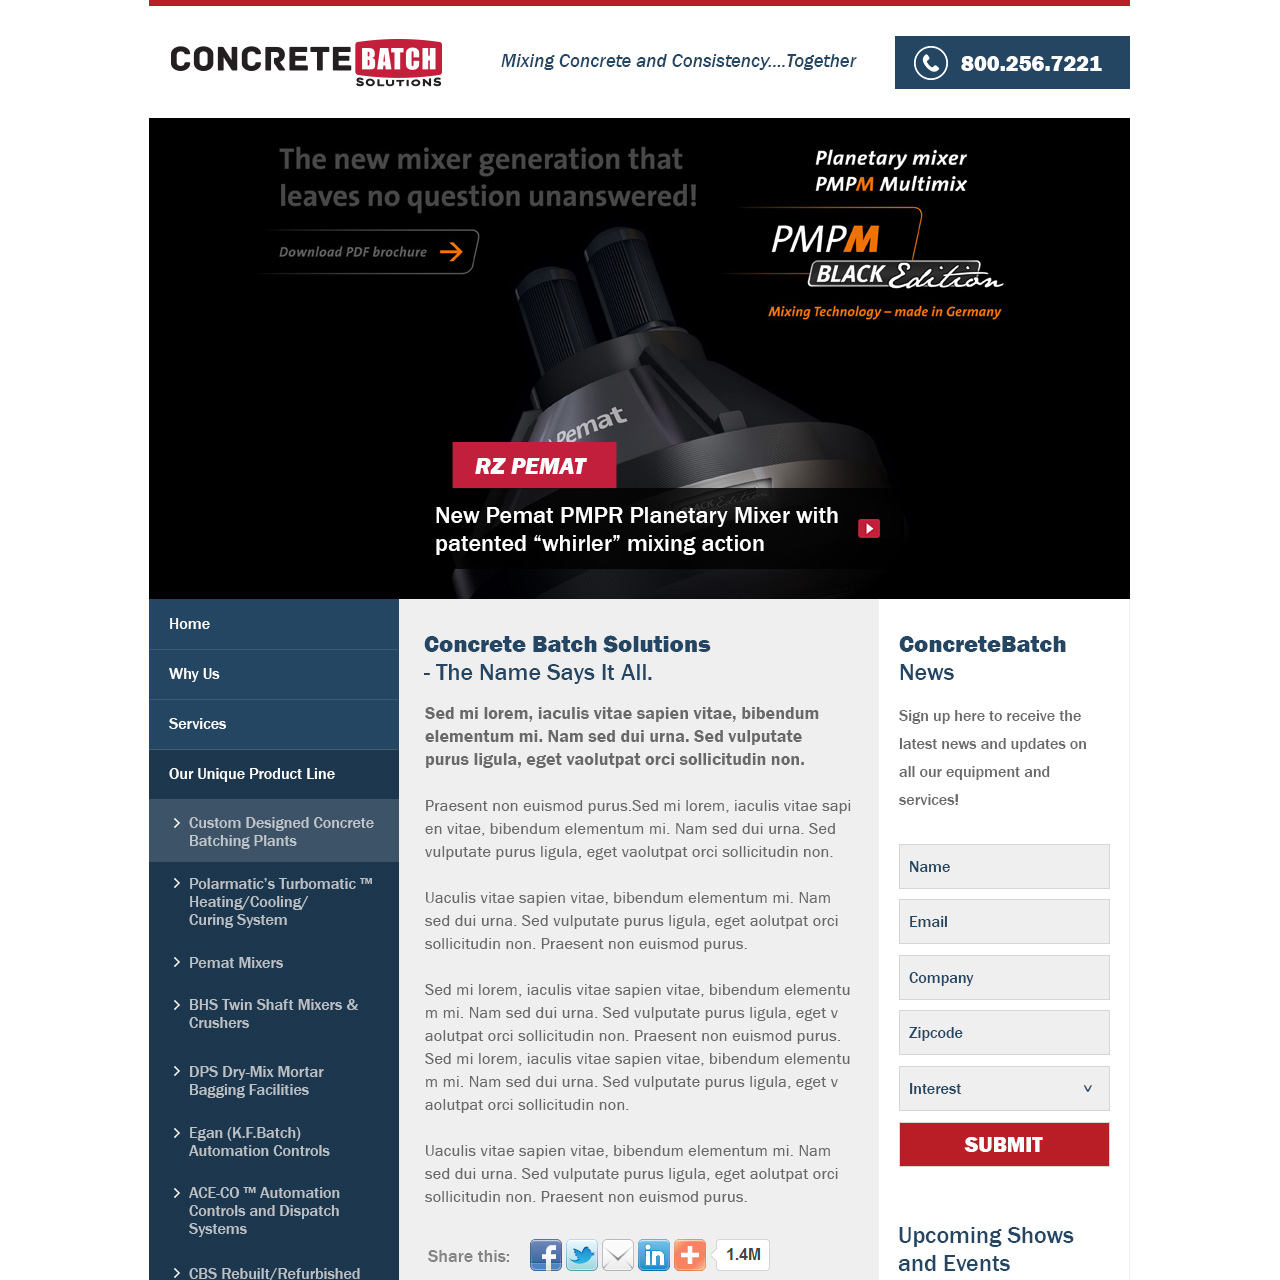 Concrete Batch - concrete manufacturing equipment website design